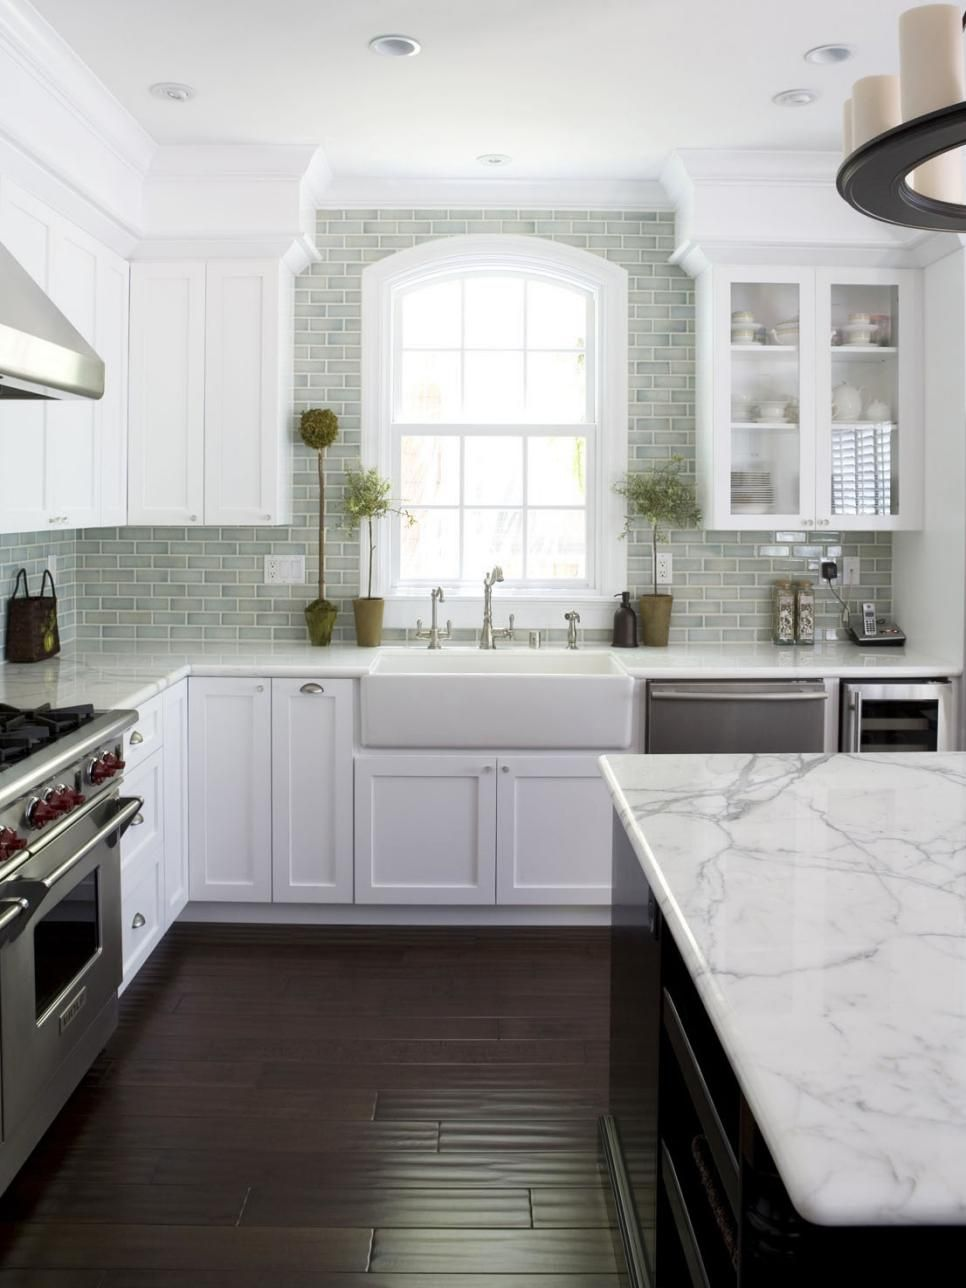 The kitchen decorating experts at HGTV.com share 50 ...